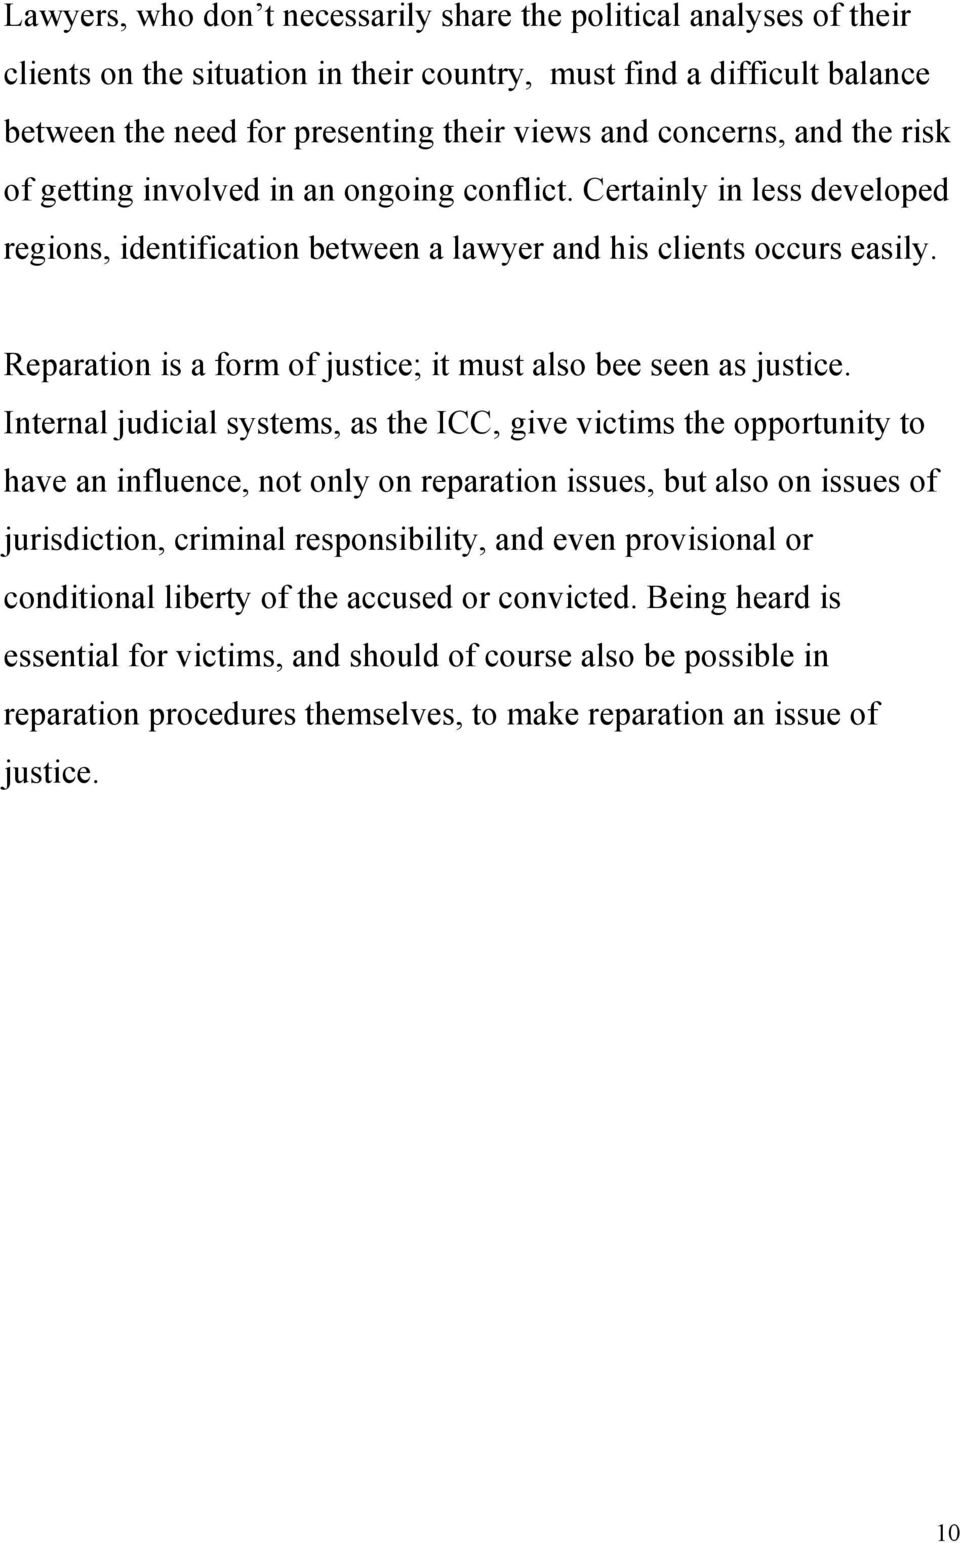 Reparation is a form of justice; it must also bee seen as justice.